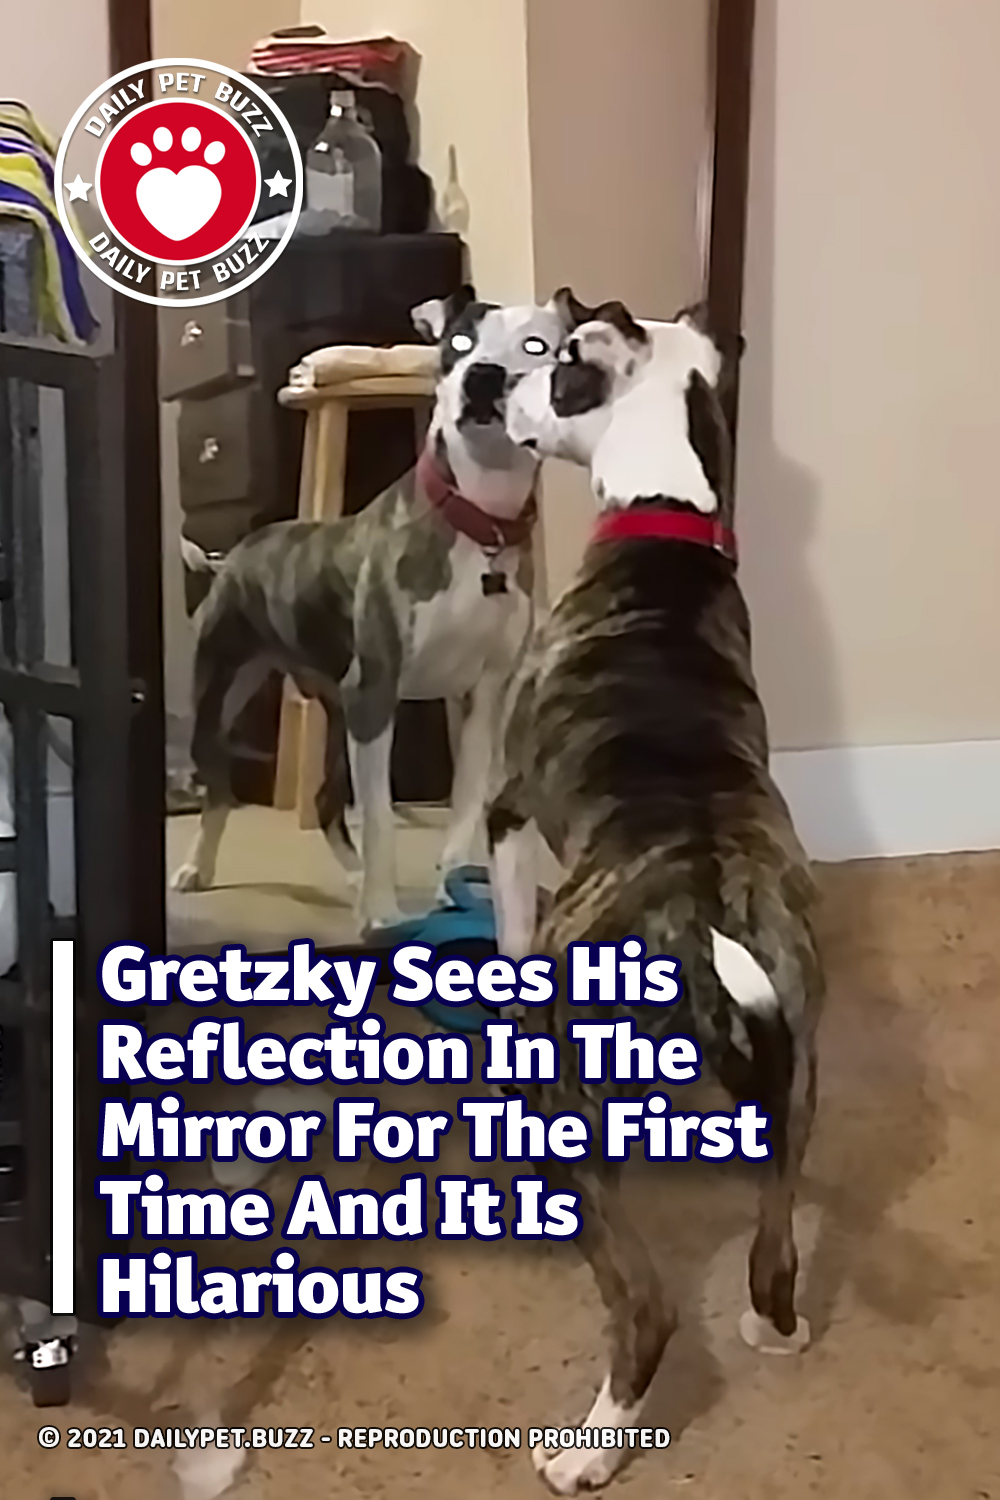 Gretzky Sees His Reflection In The Mirror For The First Time And It Is Hilarious